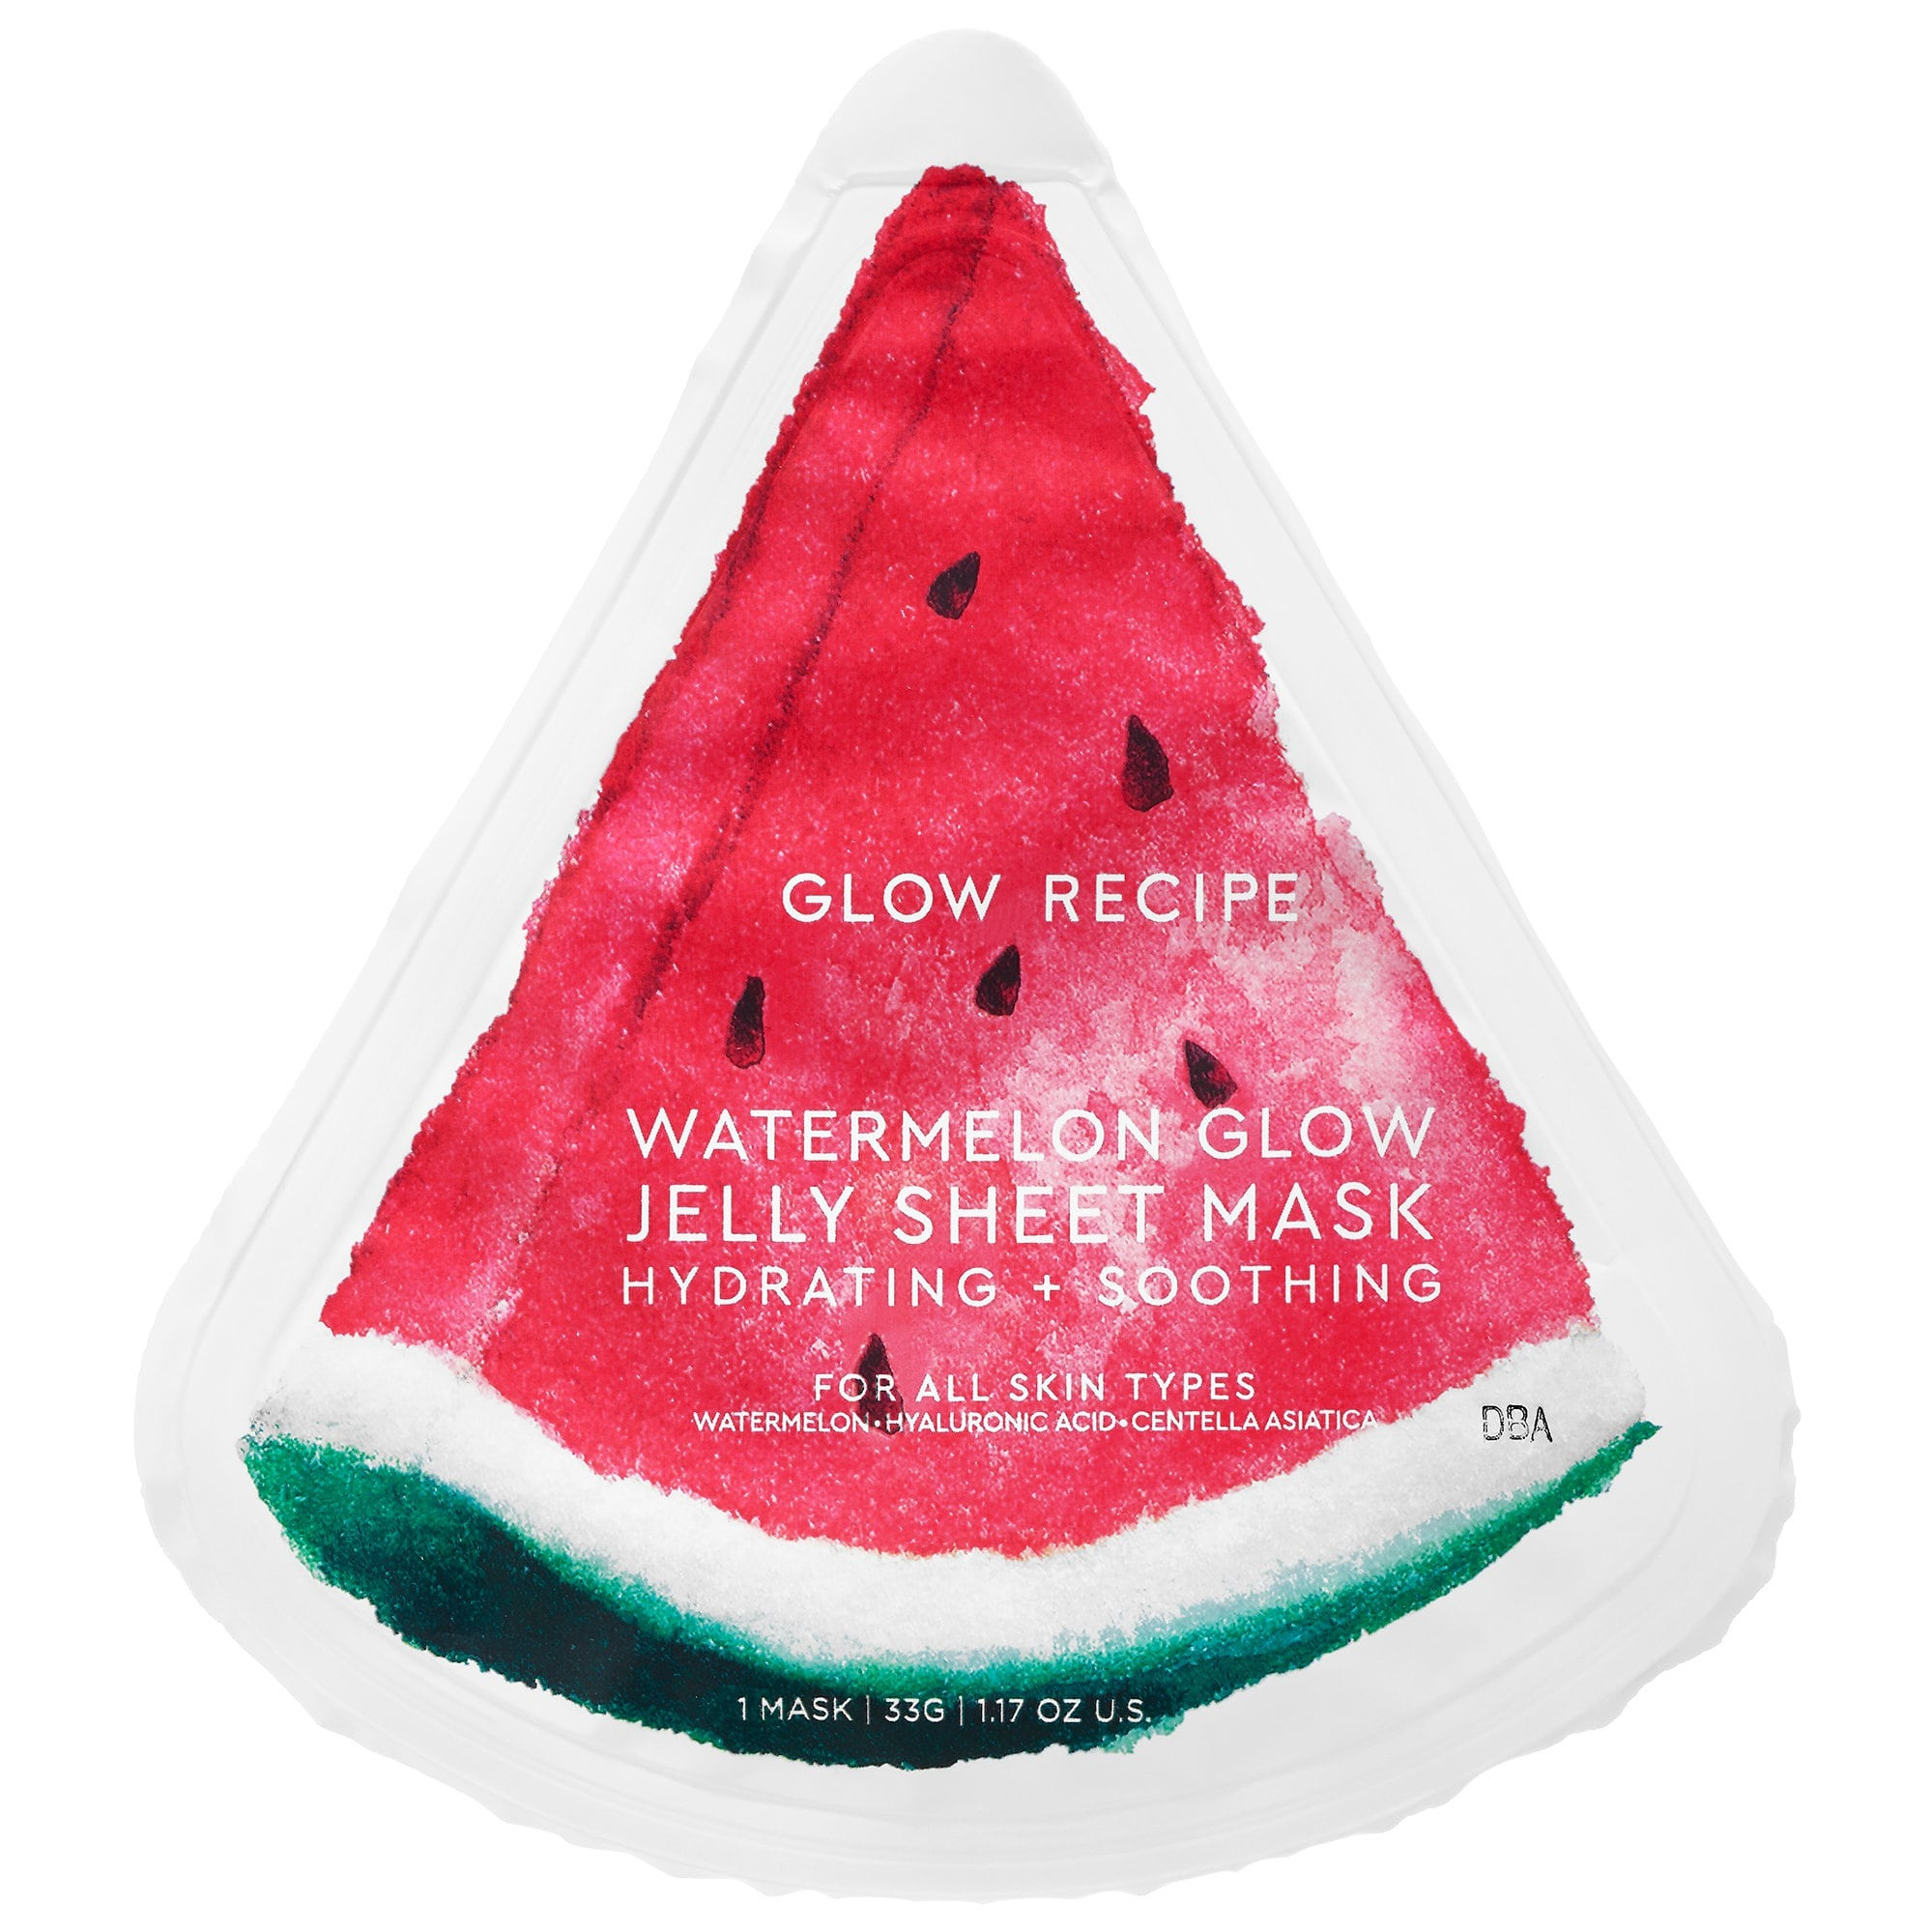 GLOW RECIPE Watermelon Glow Jelly Sheet Mask